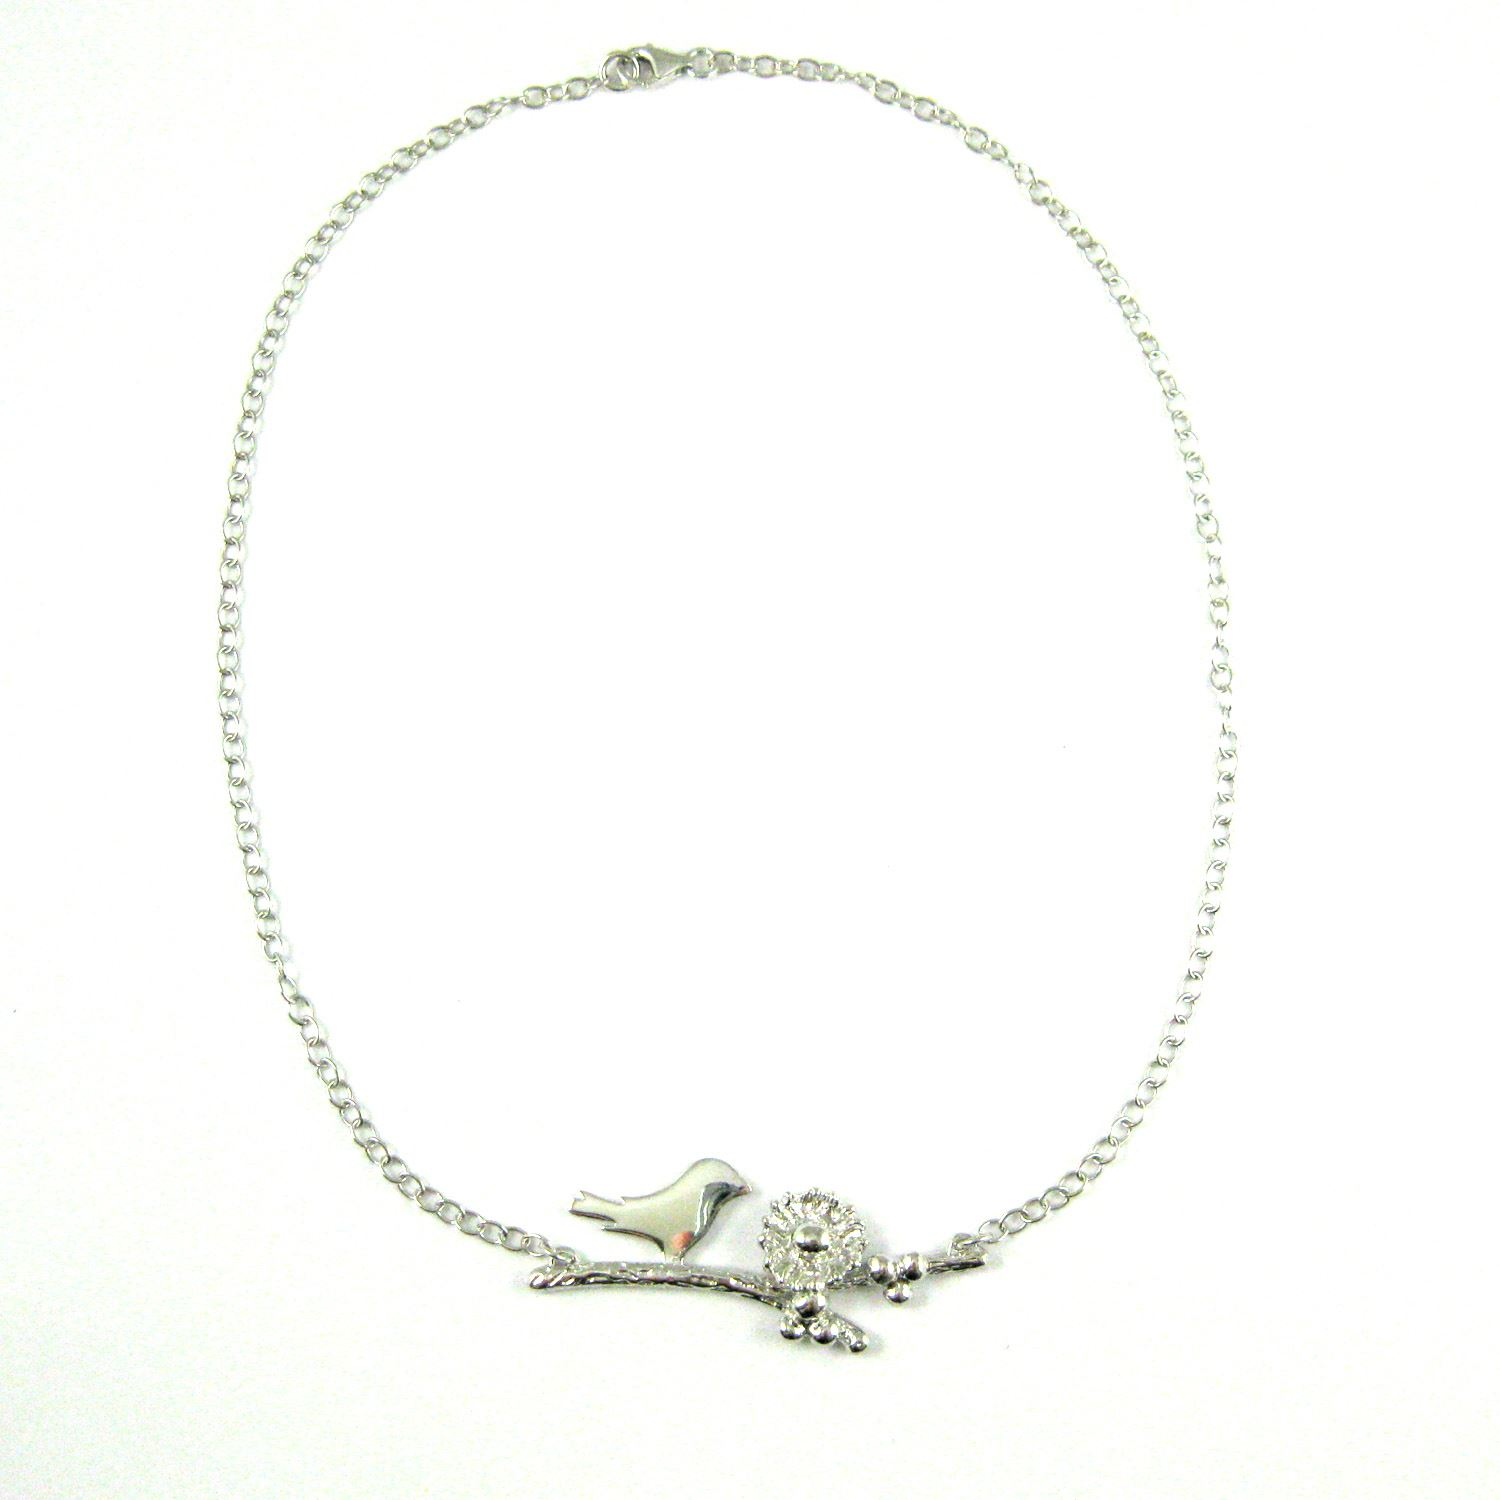 Rhodium plated Sterling Silver Bird Family Necklace, Personalized Mothers Necklace, Mama and Nest with Eggs